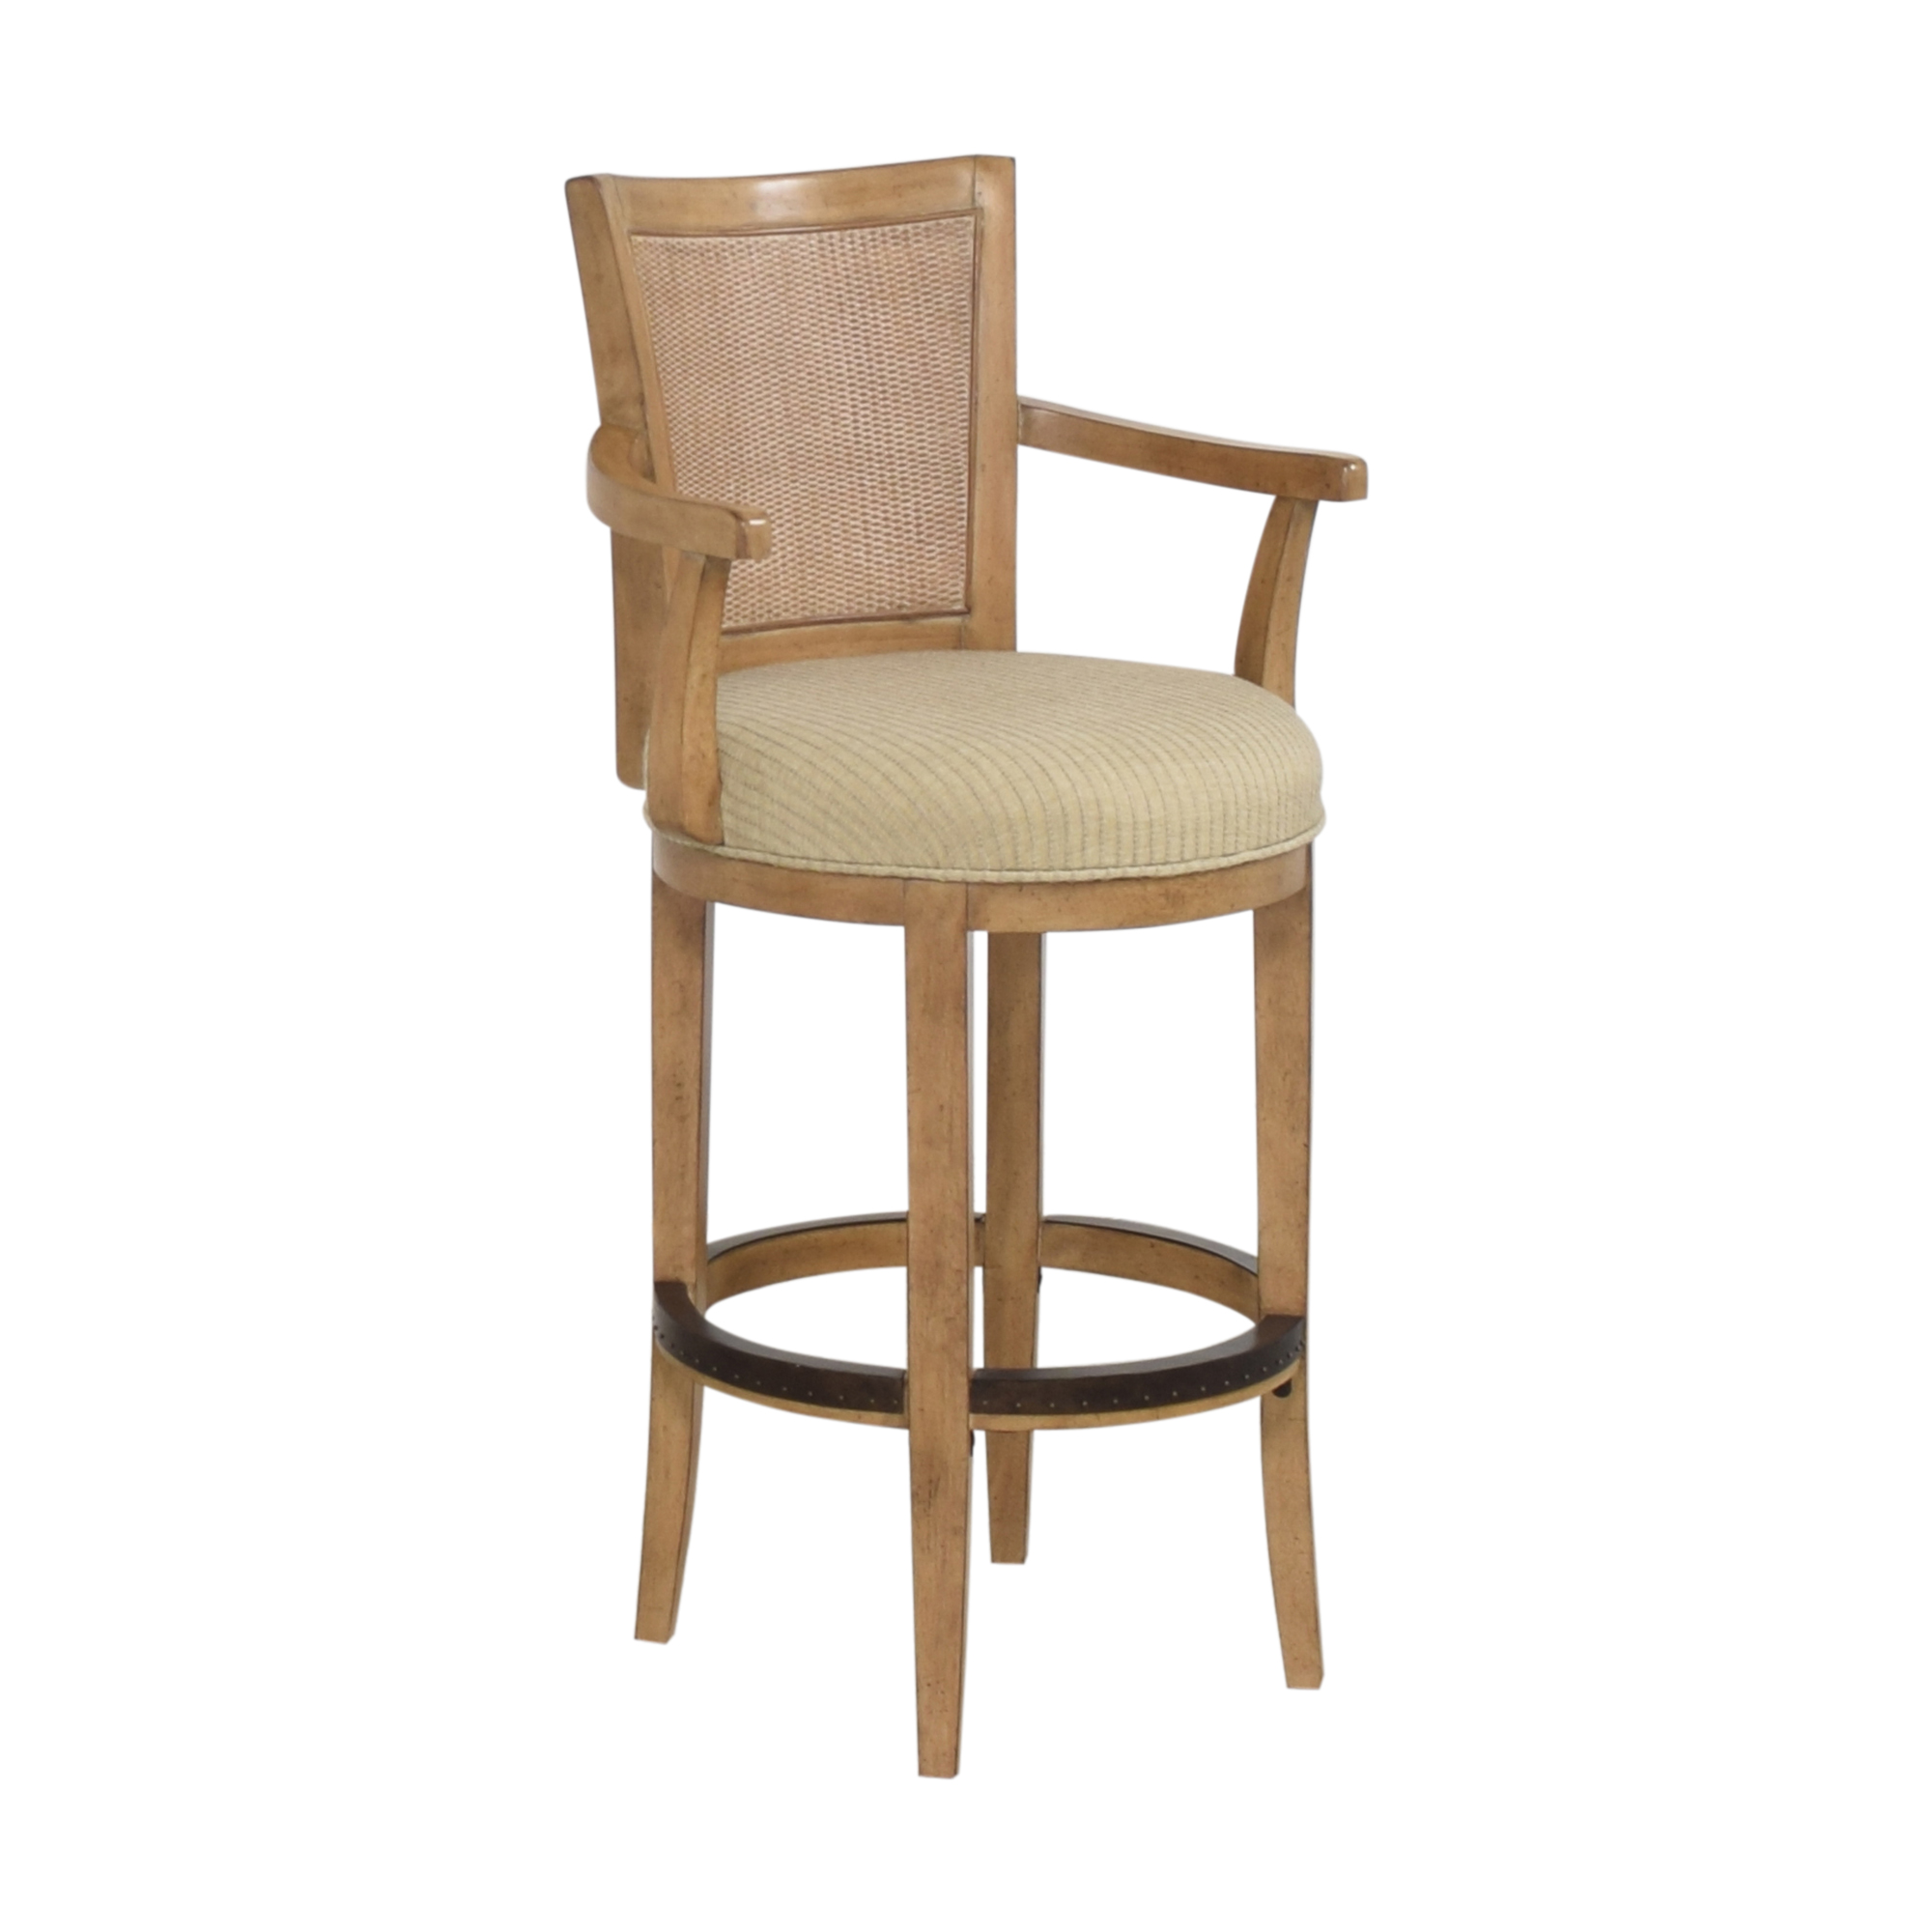 Lexington Furniture Lexington Furniture Custom Monterey Sands Carmel Bar Stool ma